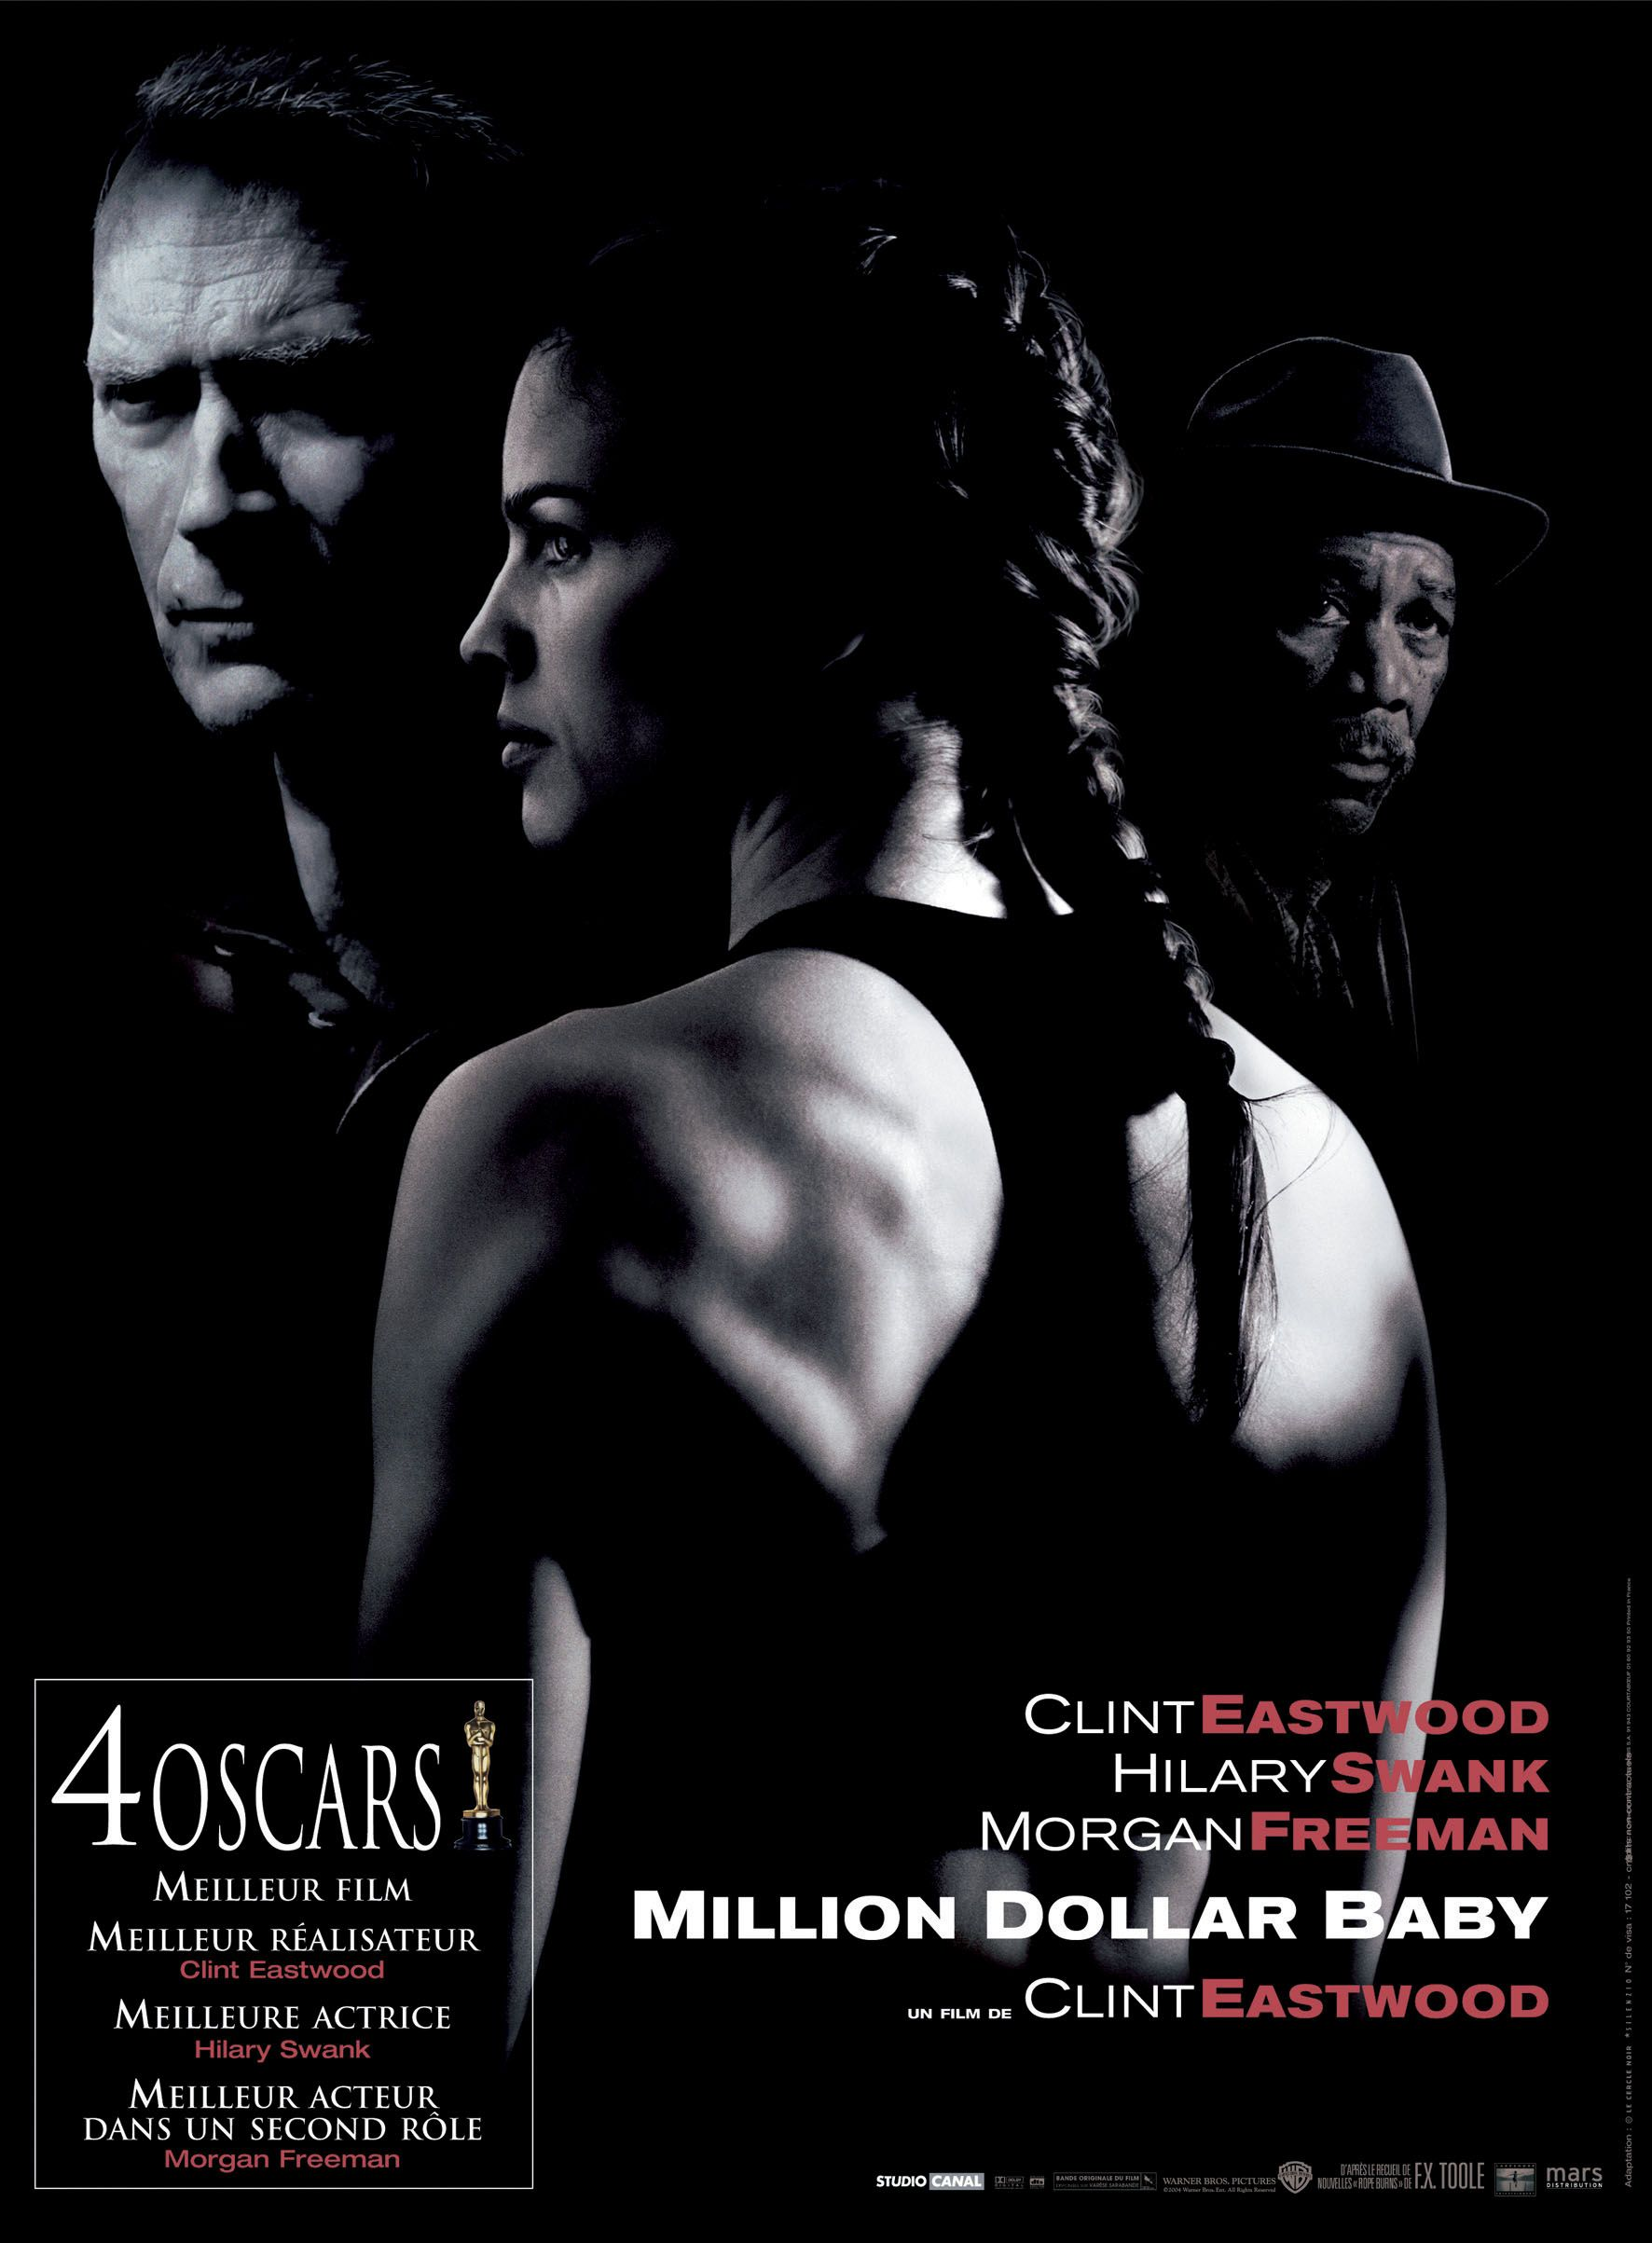 analysis of million dollar baby Now in his seventies, clint eastwood continues to find new challenges both in front of and behind the camera, as the heartrending million dollar baby demonstrates.